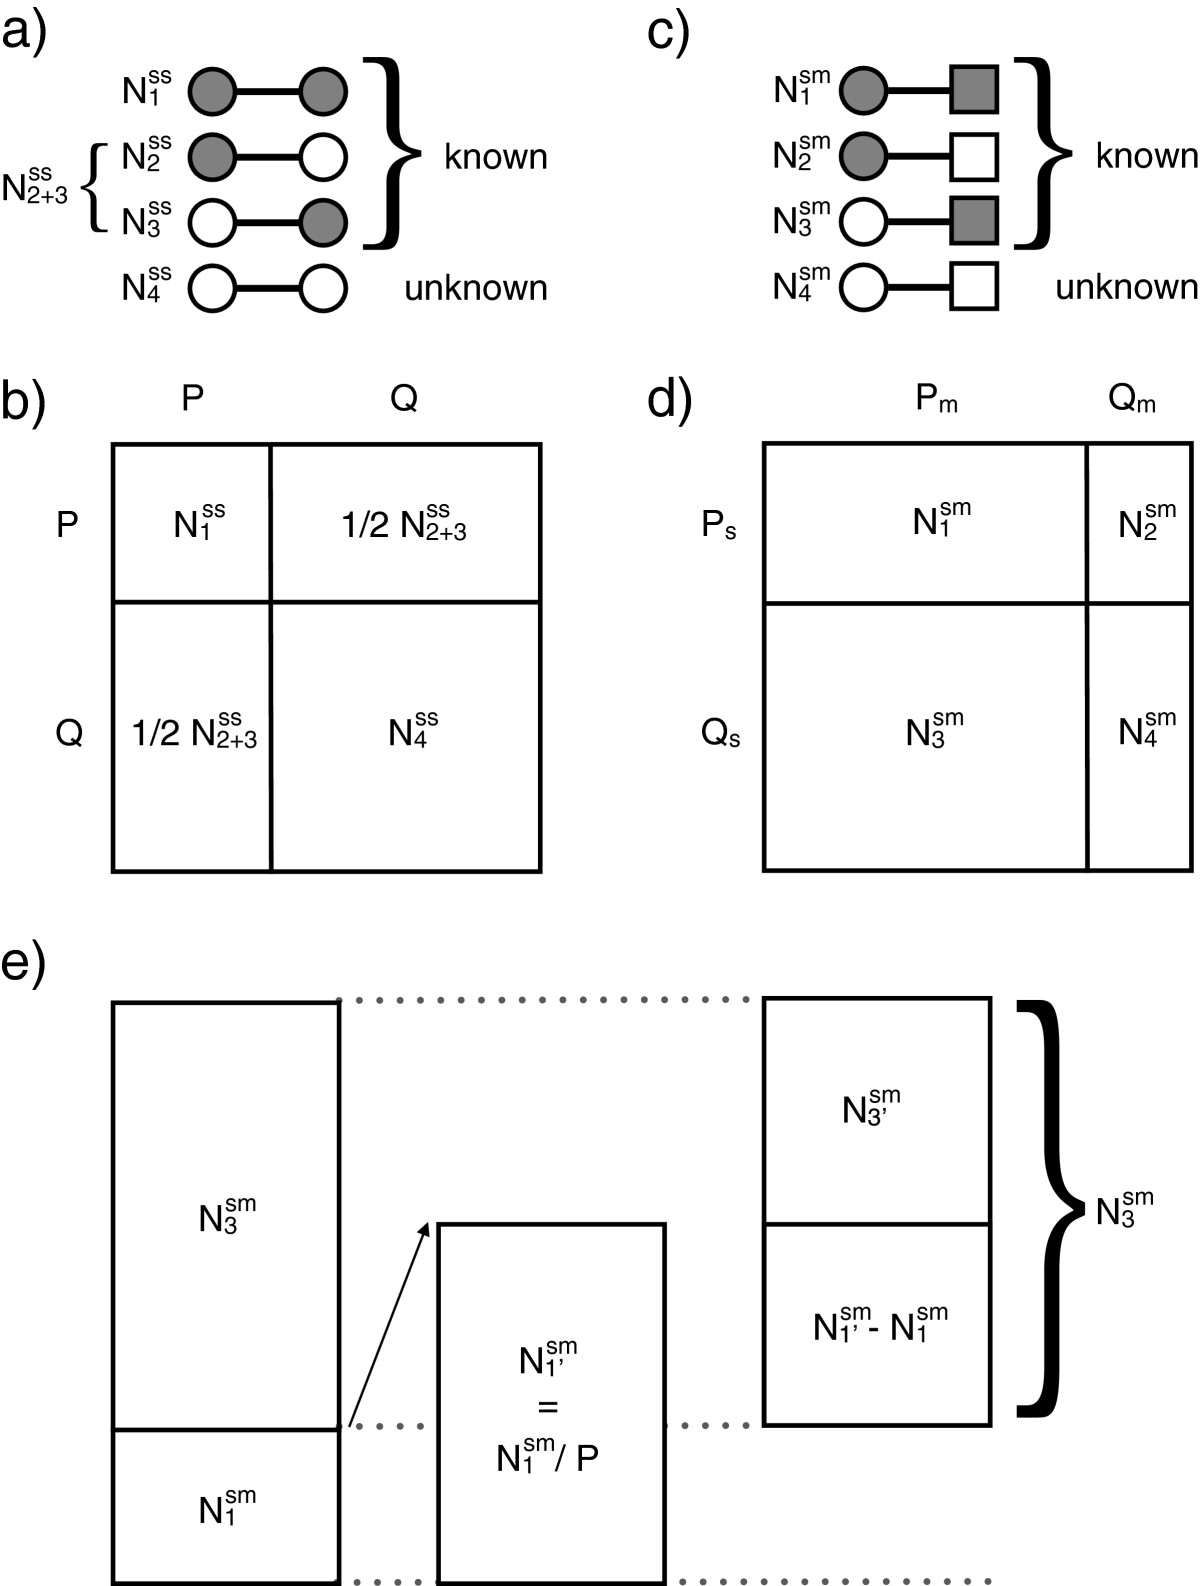 https://static-content.springer.com/image/art%3A10.1186%2F1471-2334-14-136/MediaObjects/12879_2013_Article_4175_Fig1_HTML.jpg